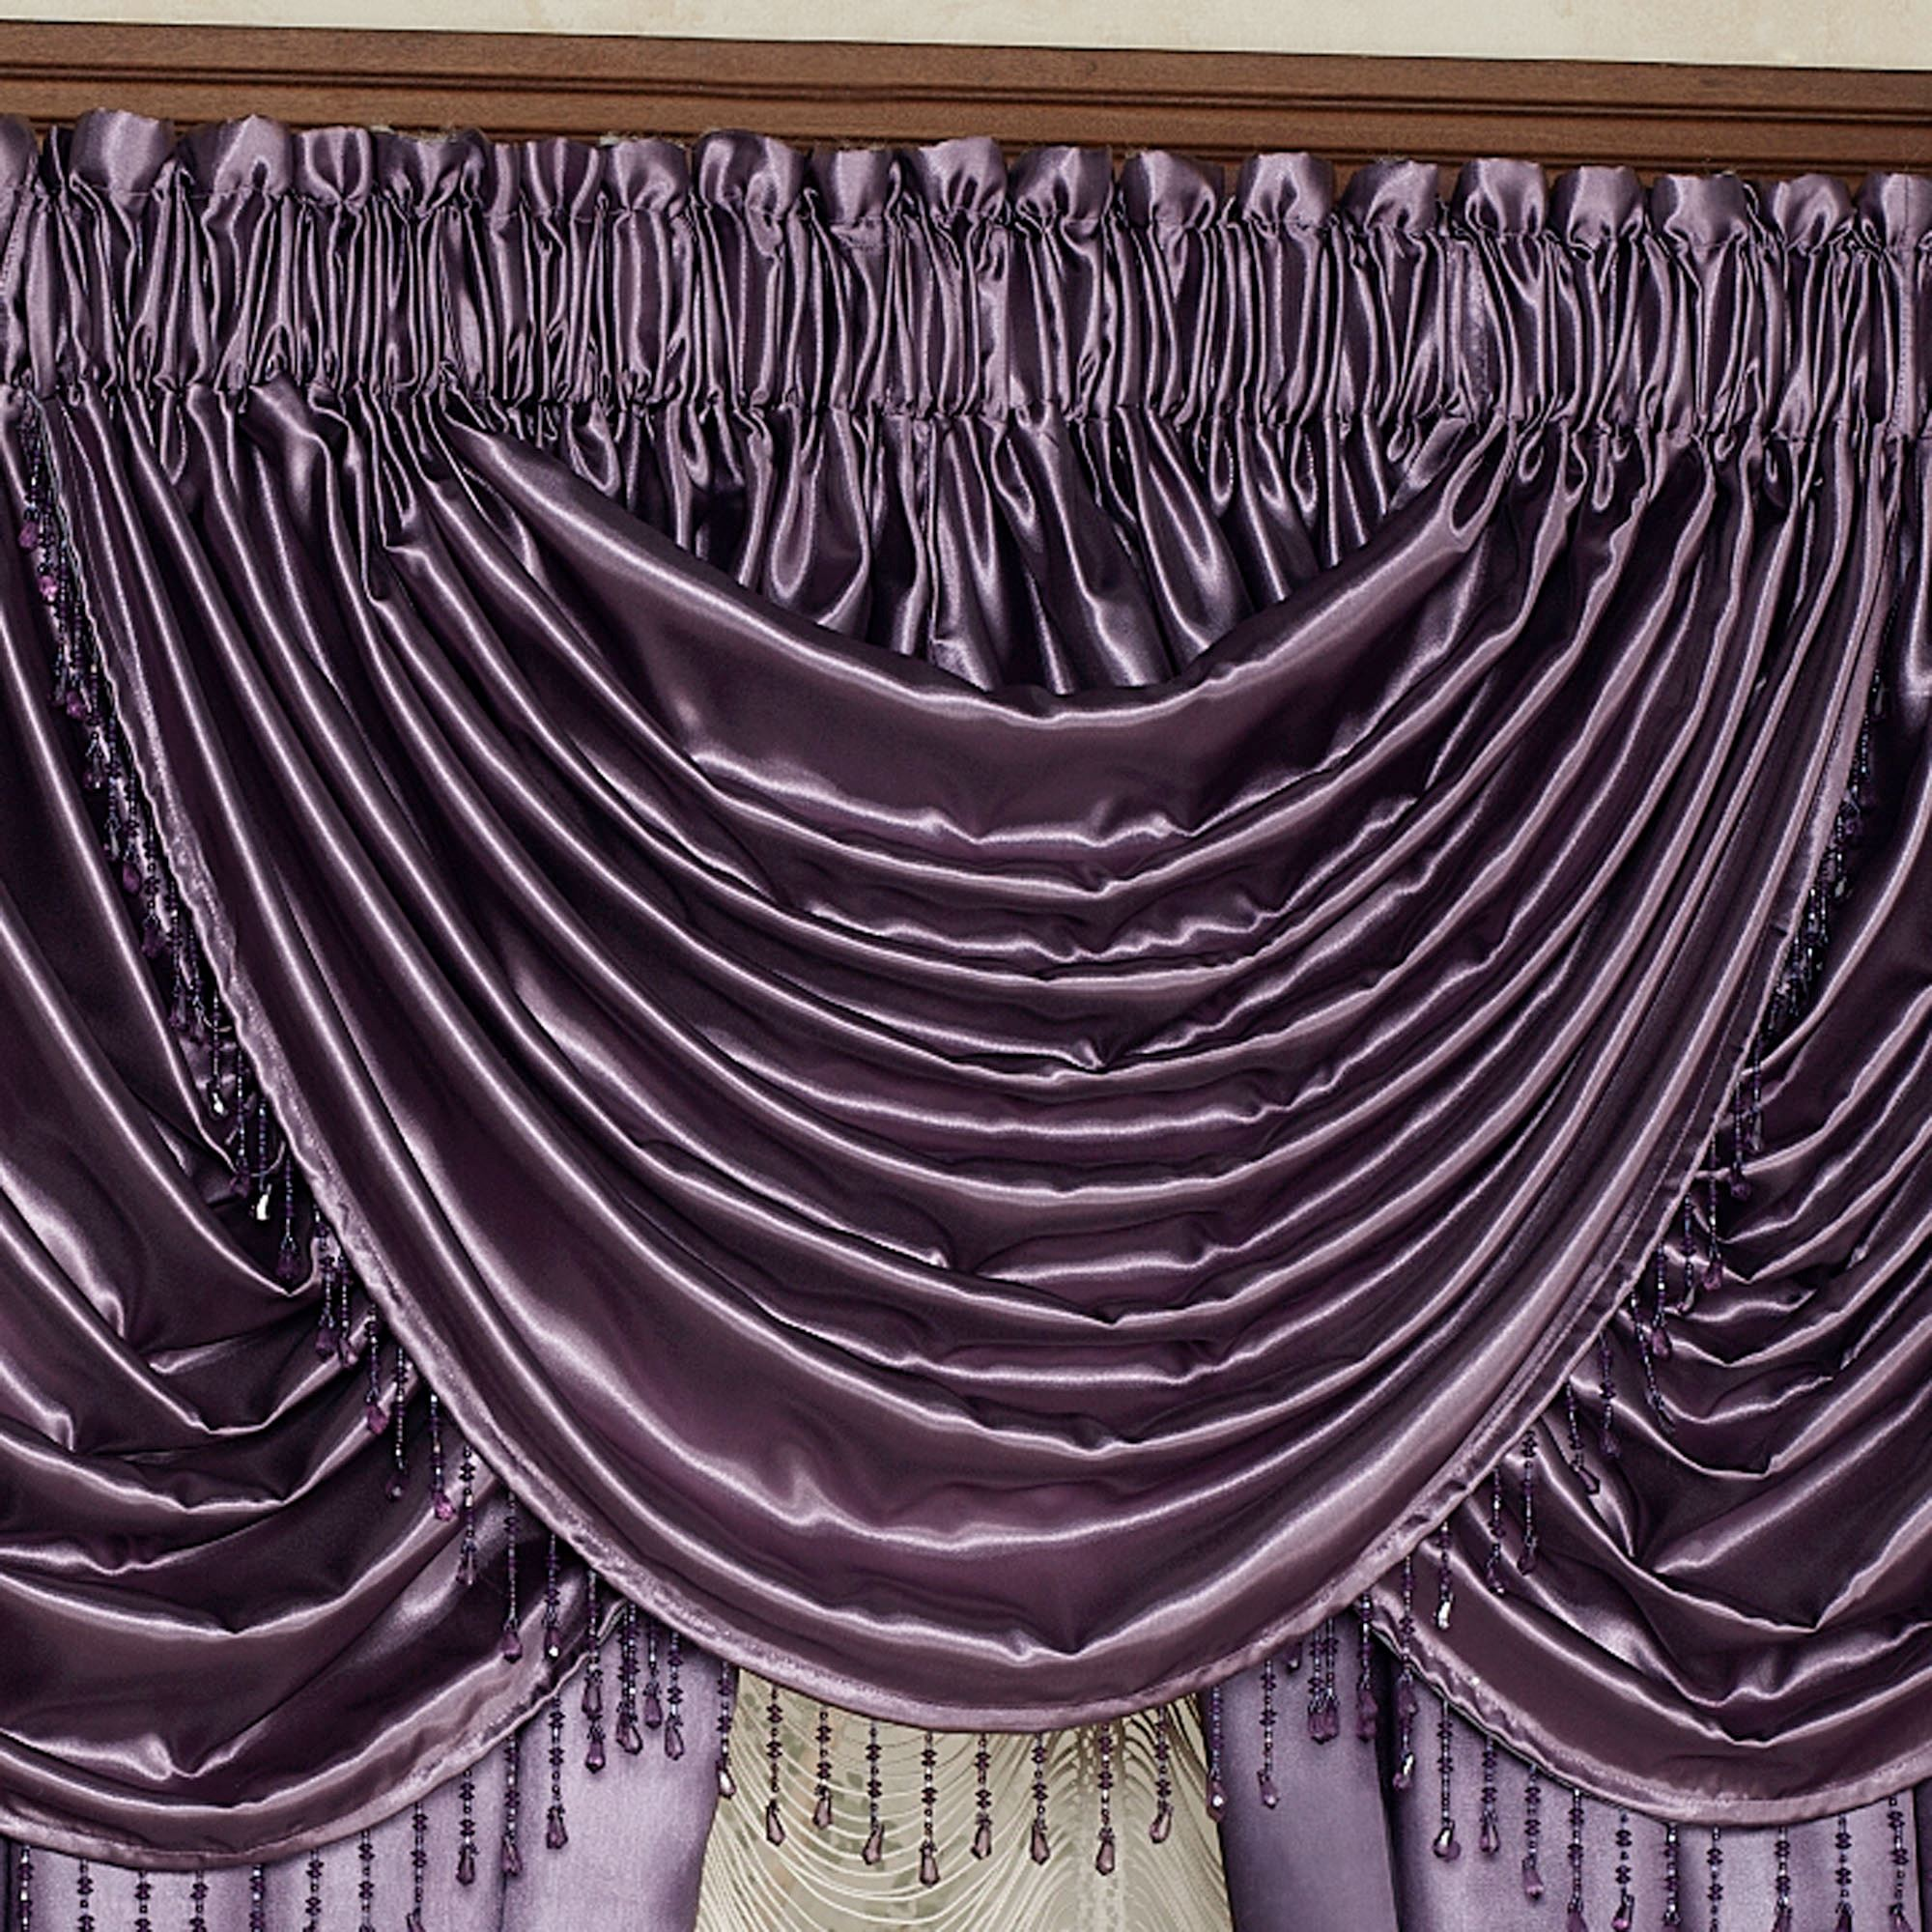 p curtain treatment wide valances valance x purple waterfall with i pair ties window portia sash